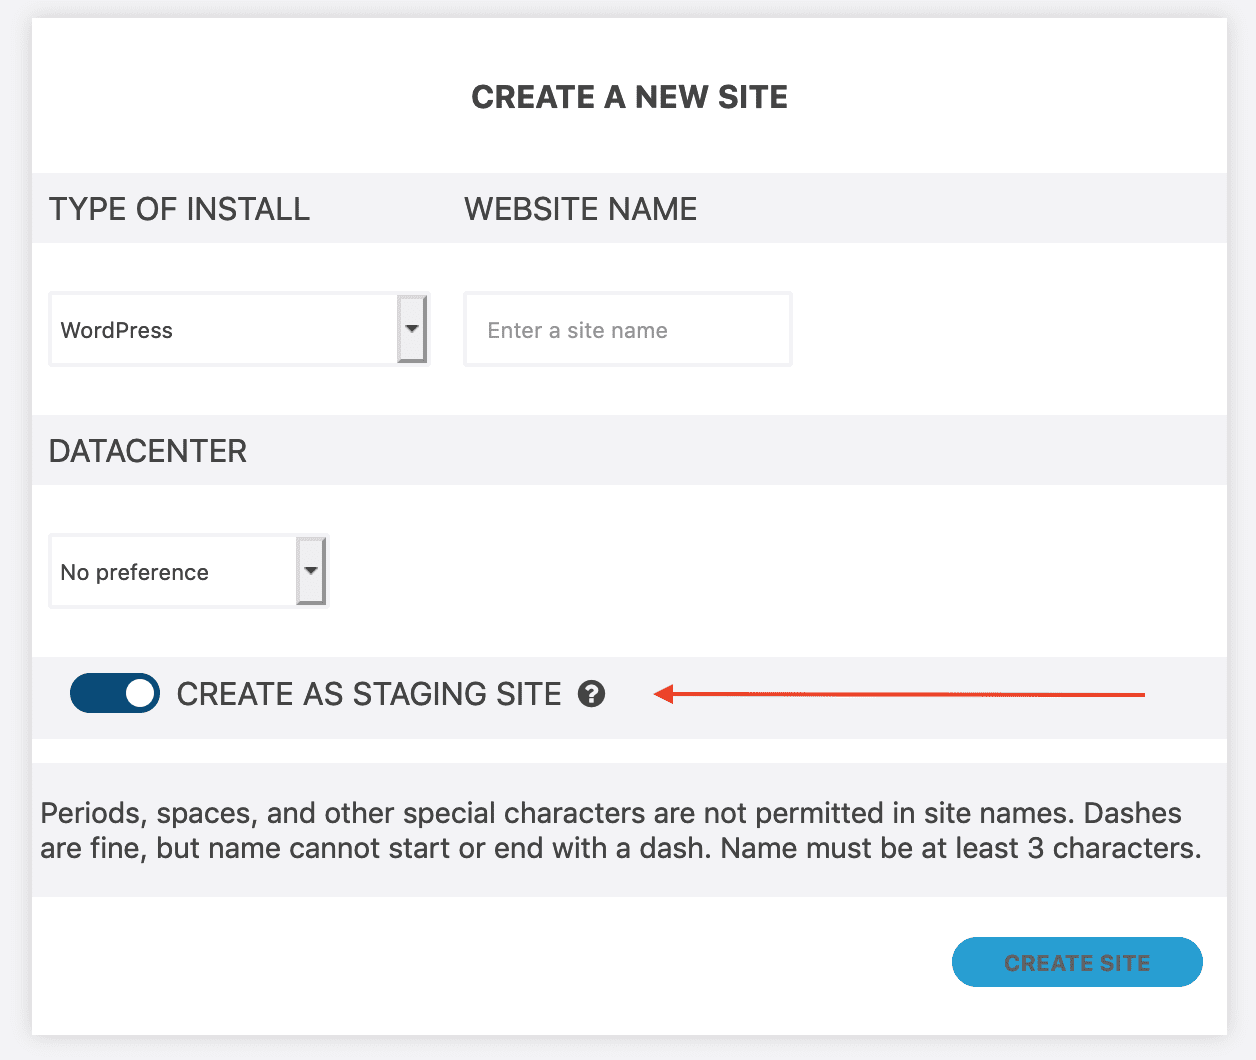 Option to create site as a staging site.